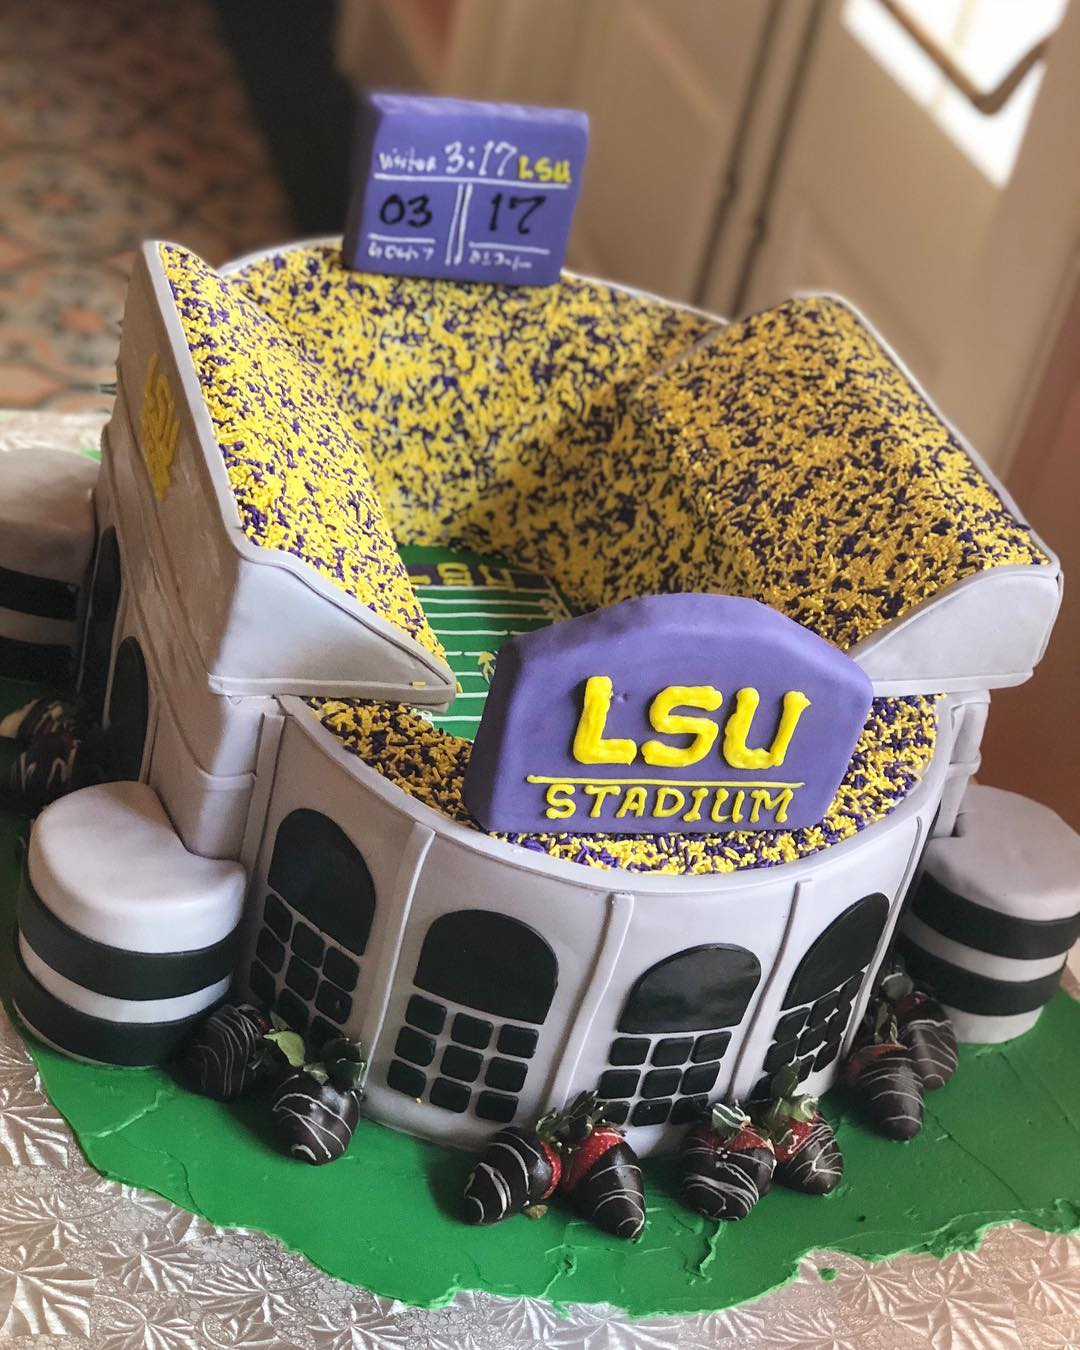 Fabulous Welcome To Death Valley Lsu Deathvalley Groomscake Personalised Birthday Cards Veneteletsinfo